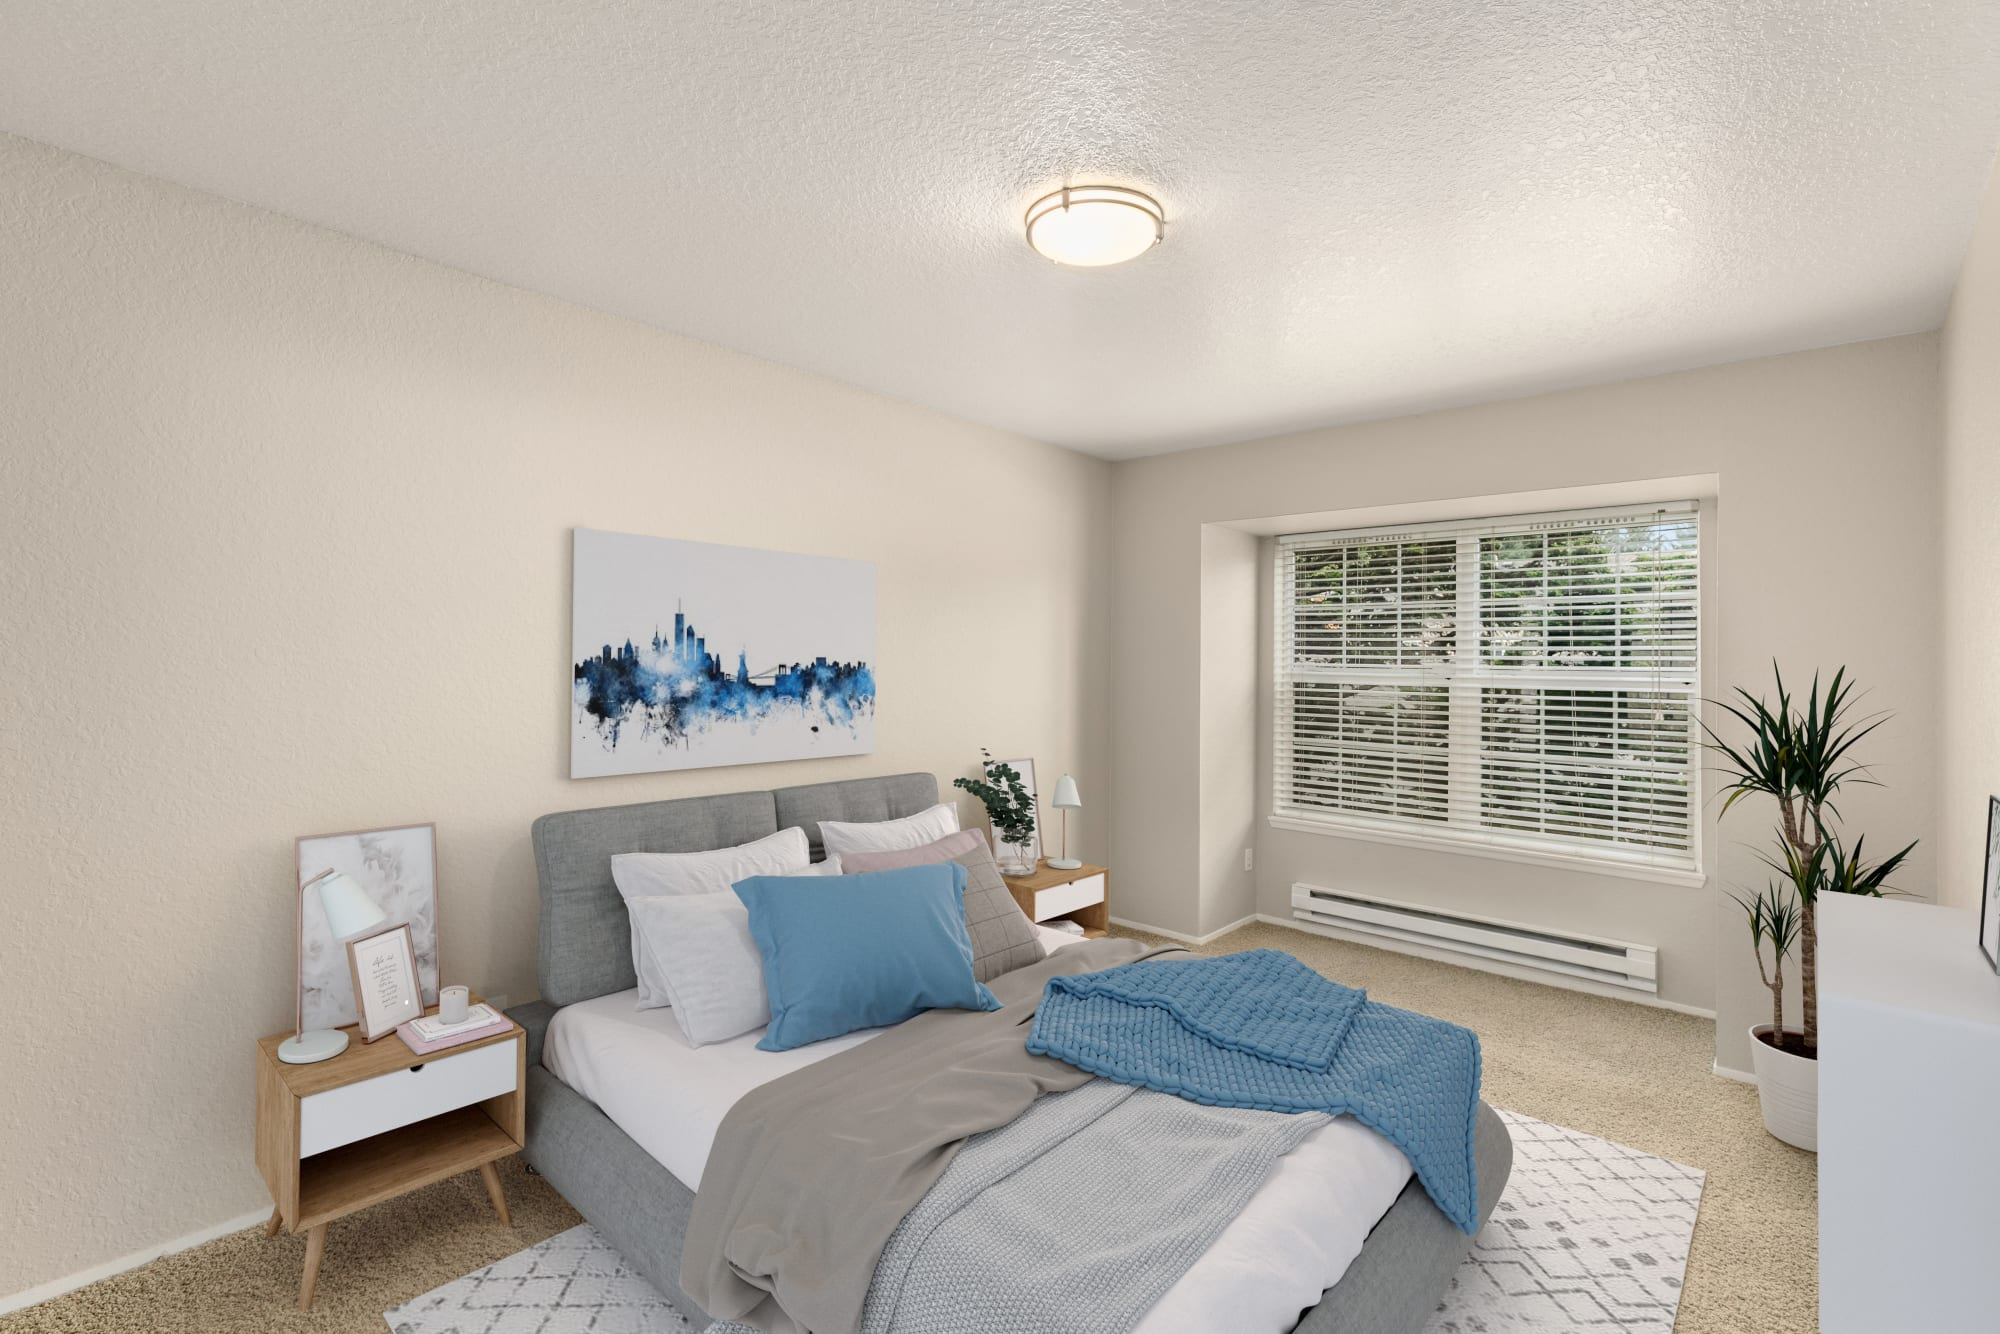 Spacious bedroom with a large window at Carriage Park Apartments in Vancouver, Washington